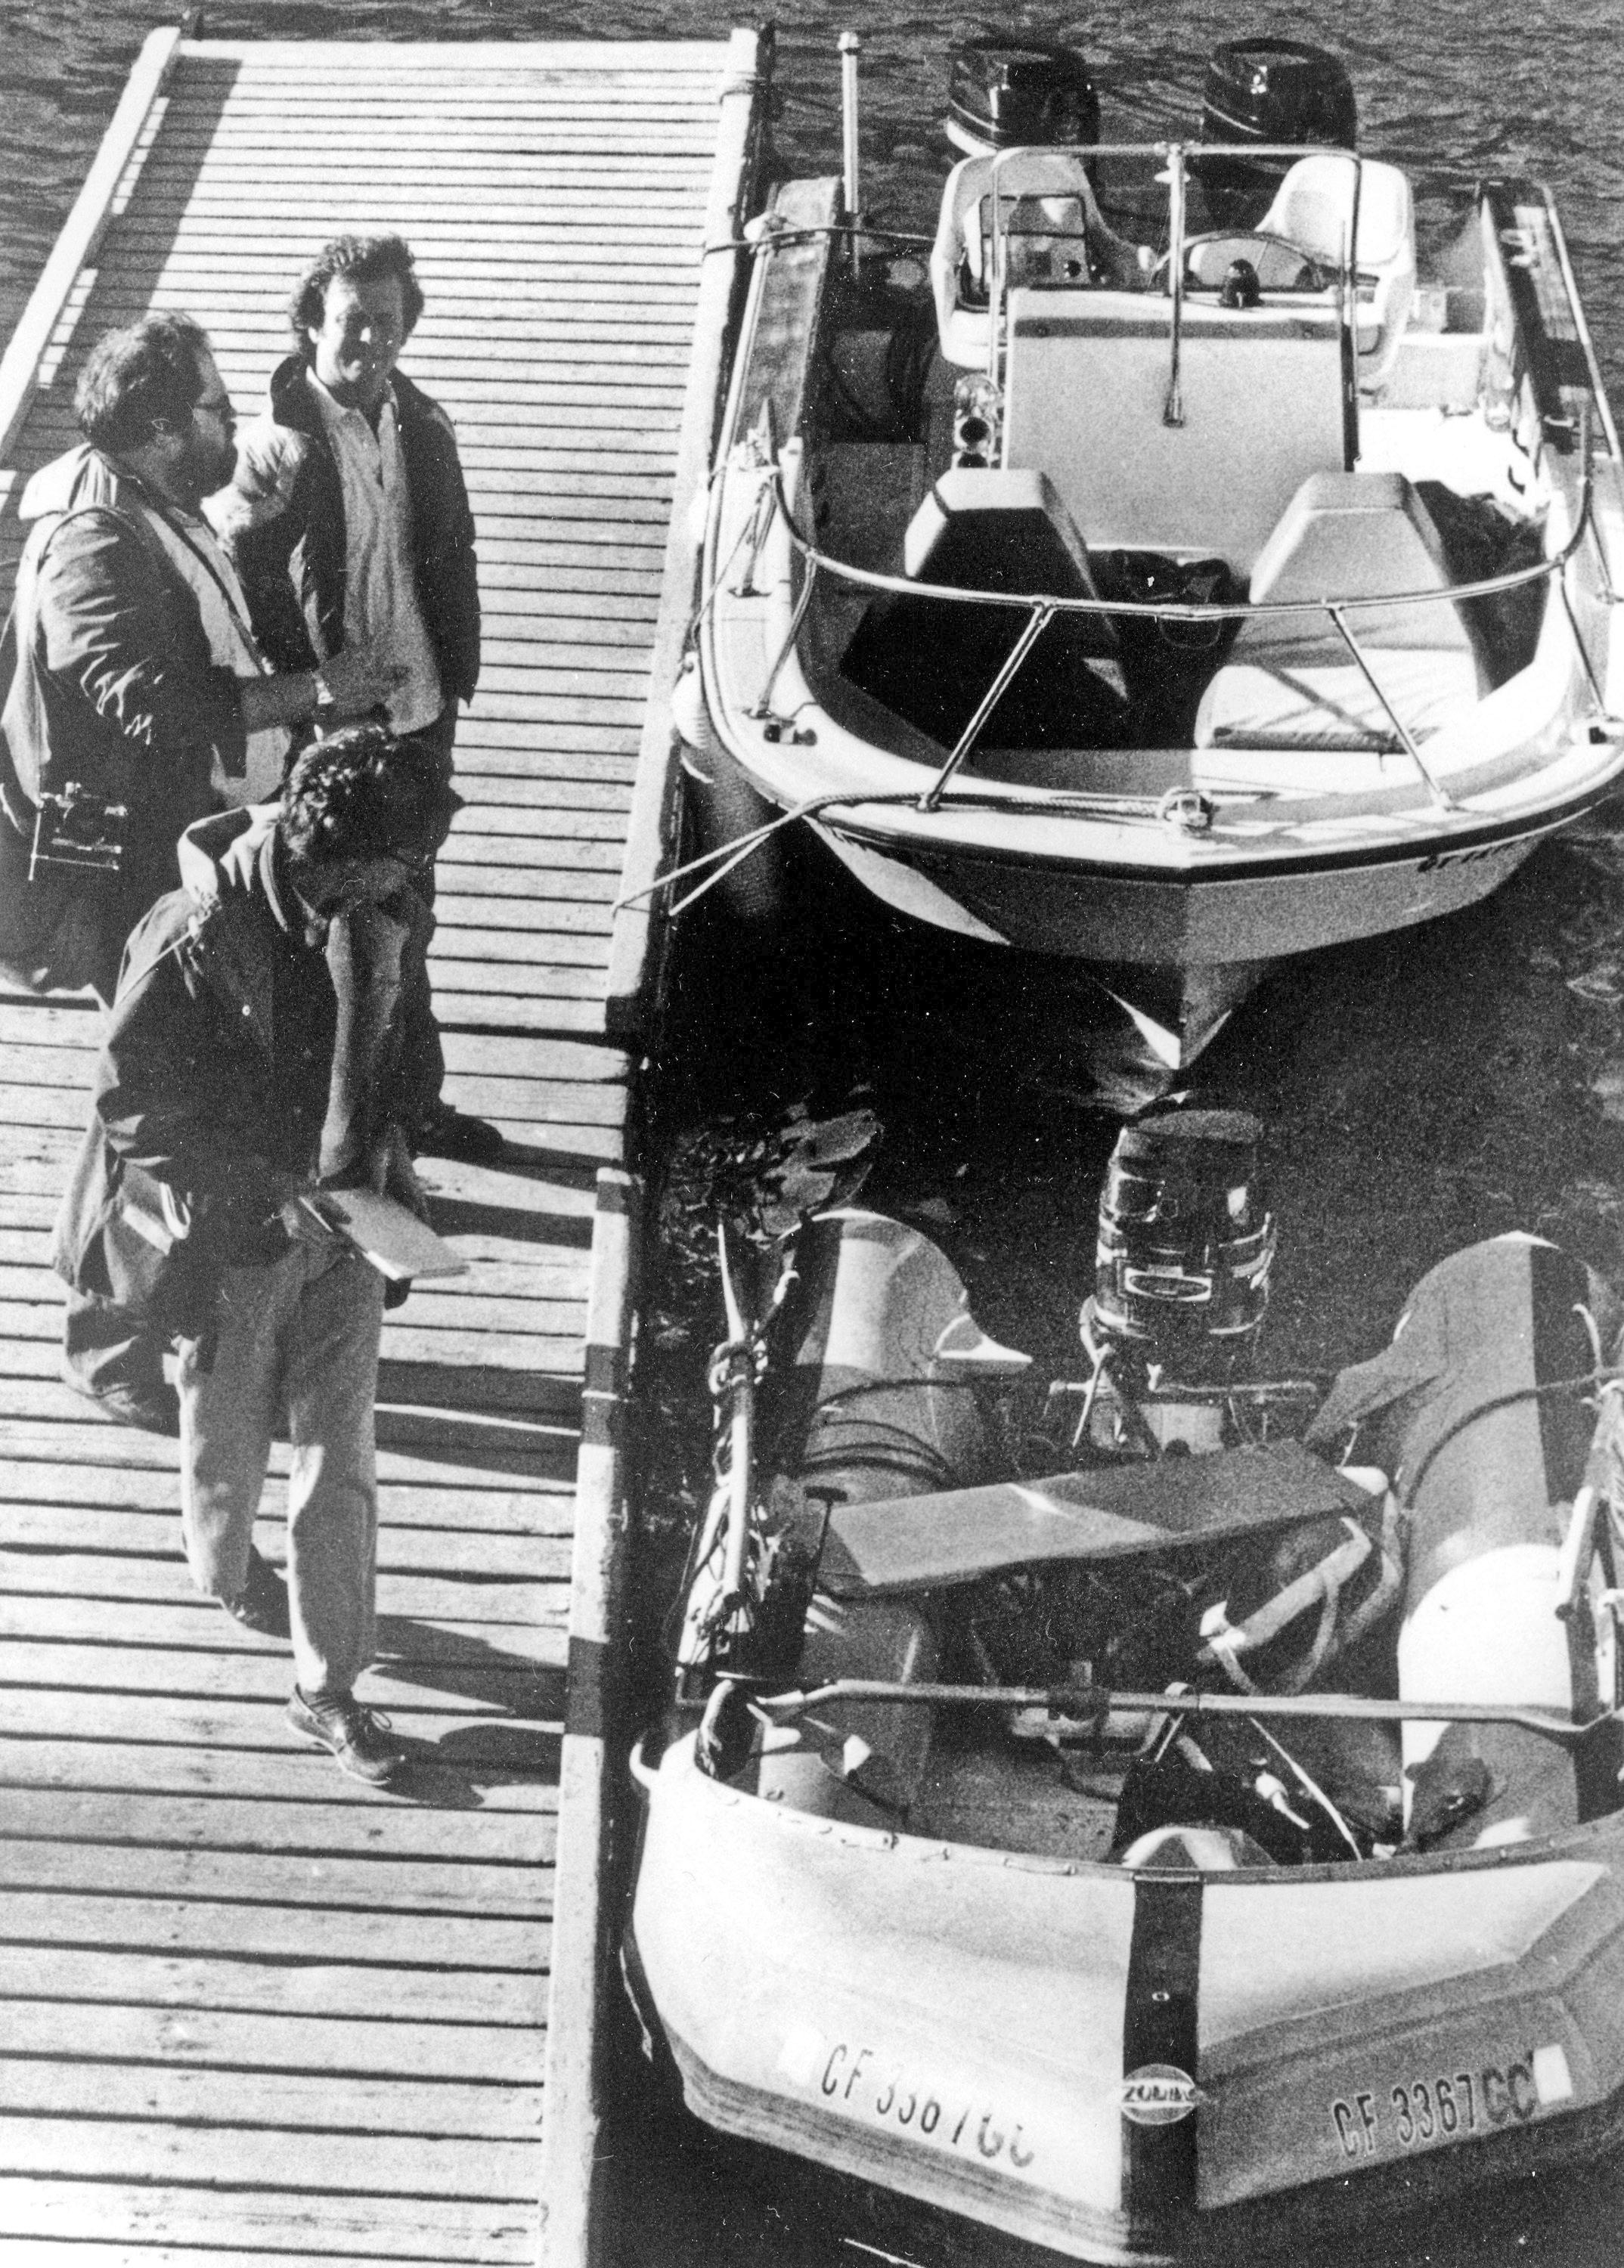 "FILE - This Nov. 30, 1981 file photo shows the ""Prince Valiant,"" the inflatable dinghy used by Natalie Wood, moored at the harbor in Avalon, Calif., after it washed up on the rocks on Santa Catalina Island. Patrolmen discovered the actress' body 200 yards off Blue Cavern Point on Catalina Island, 100 yards away from the boat after a seven hour search. Investigators are now calling her husband, Robert Wagner, a ""person of interest"" in the 1981 death of Wood. Mystery has swirled around Wood's death. It was declared an accident but police reopened the case in 2011 to see whether Wagner or anyone else played a role (AP Photo/Paul J. Harrington, File)"